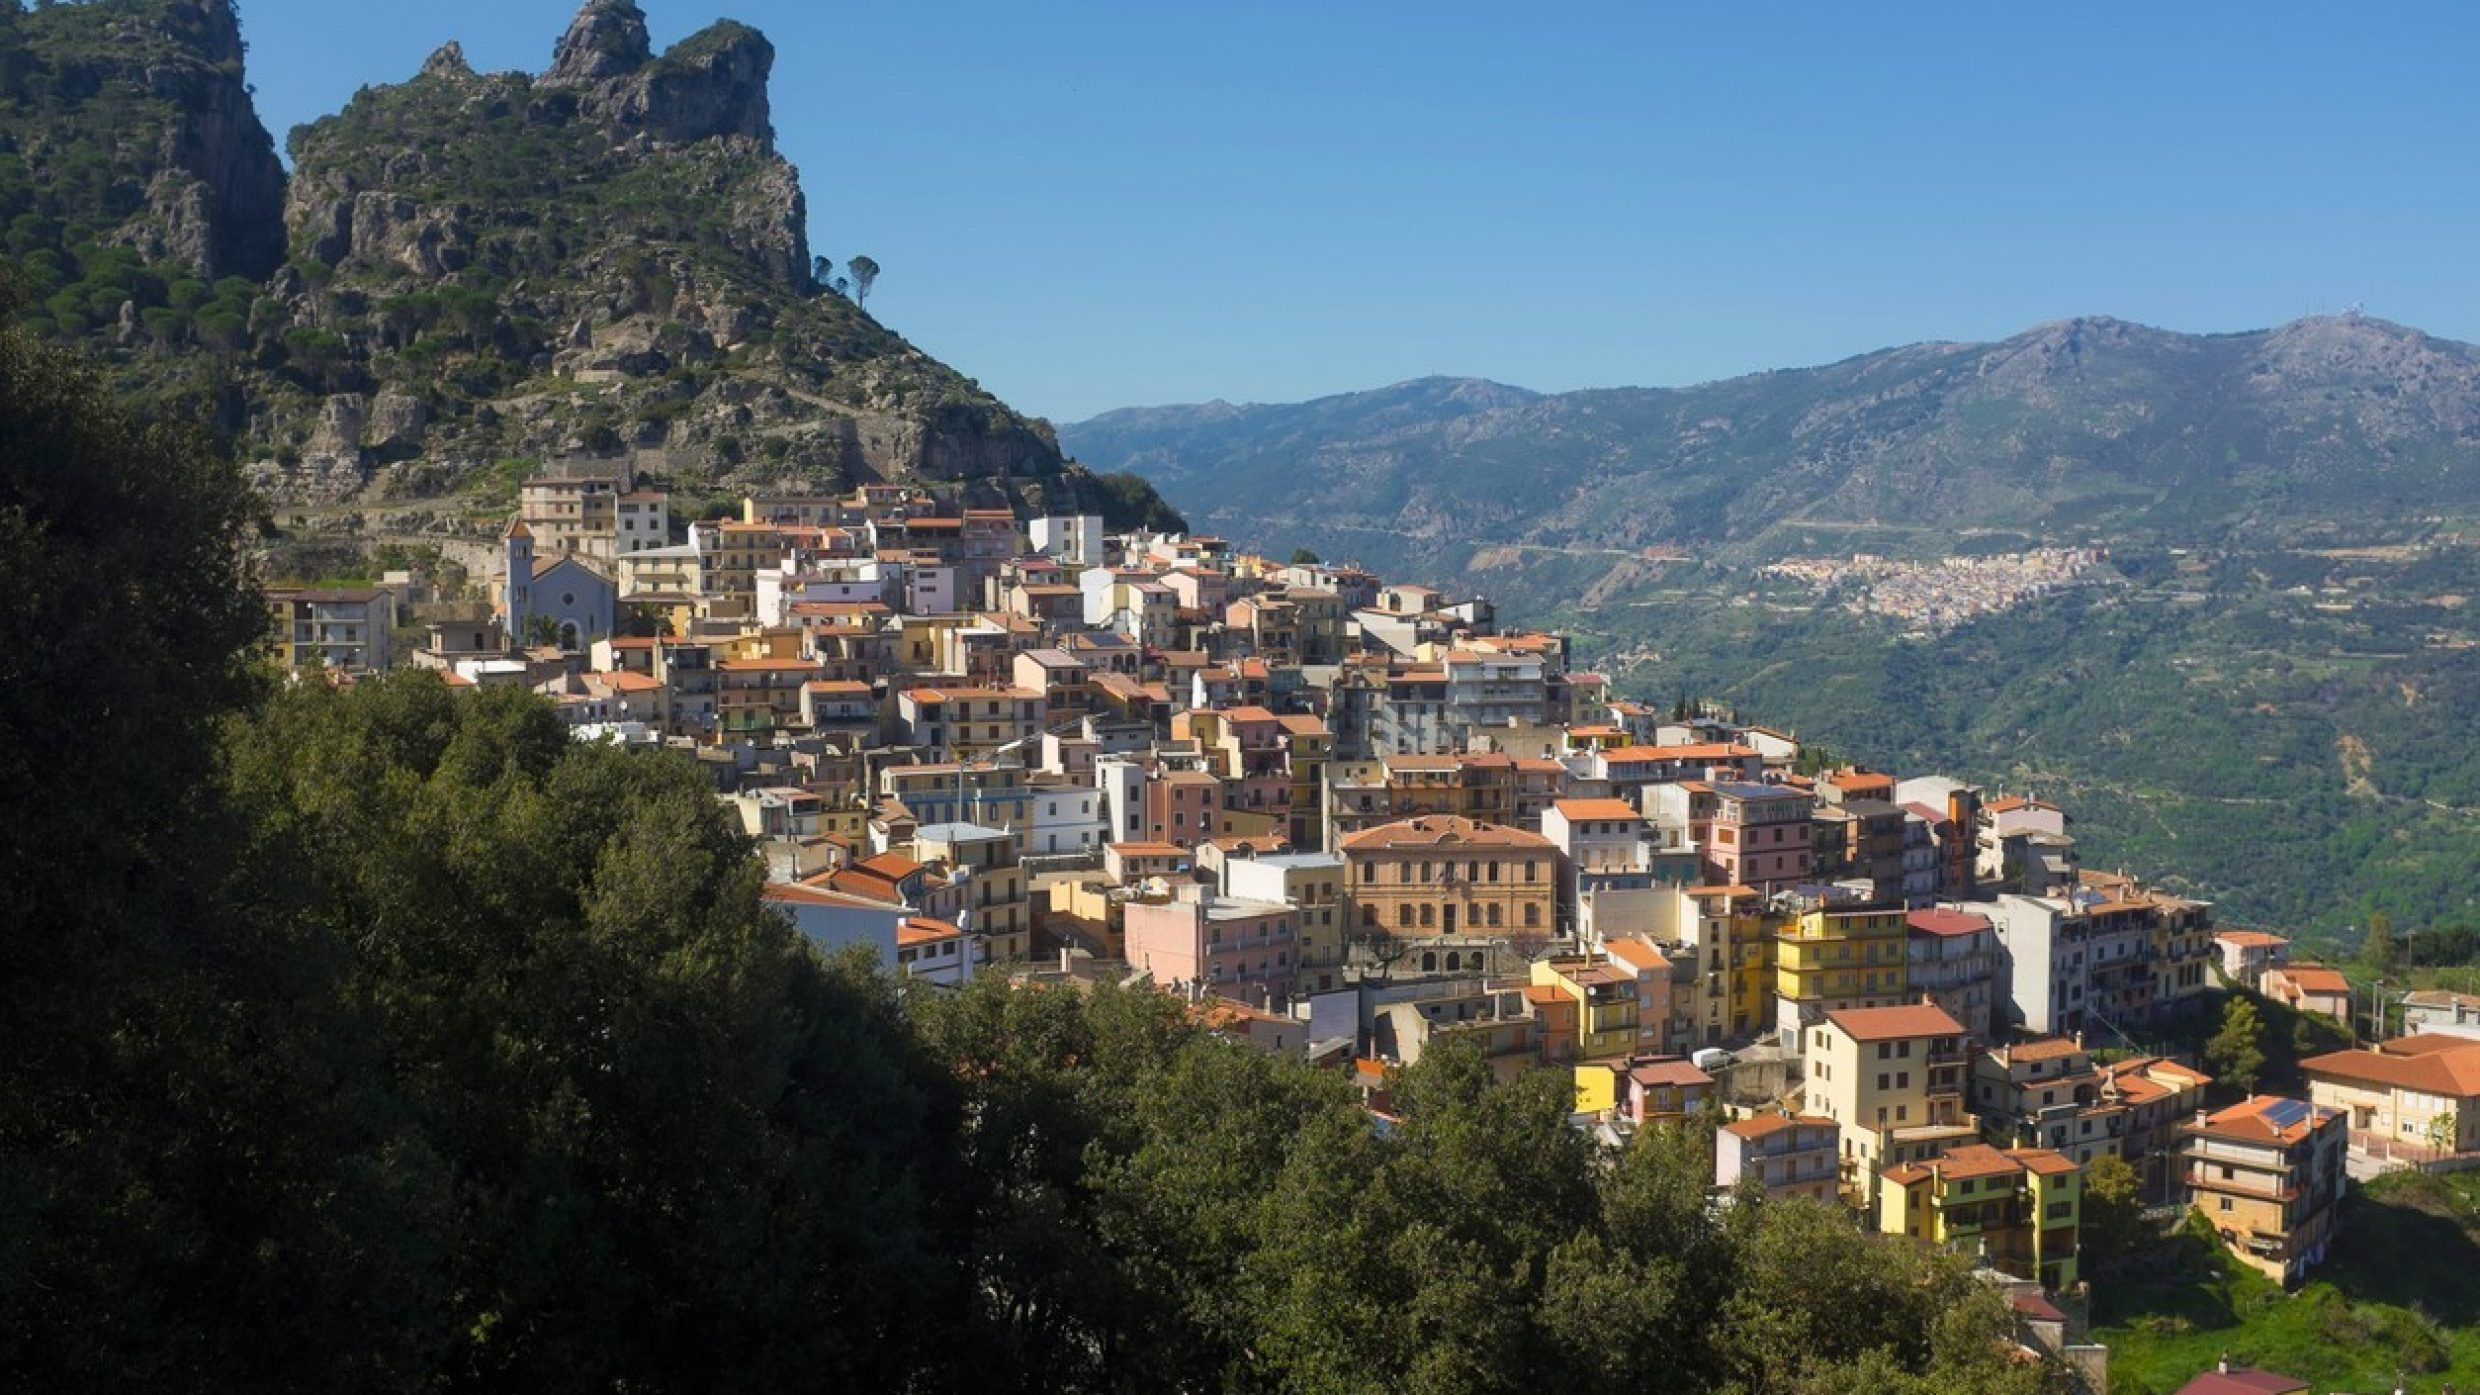 The mountain region of Sardinia, especially the eastern province of Nuoro, is a stronghold of longevity. A noteworthy point: men live just as long as women, while life expectancy in the industrialised world is lower by about seven years for men. One prominent example was Antonio Todde, who died in 2002 shortly before his 113th birthday – as the world's officially oldest man.